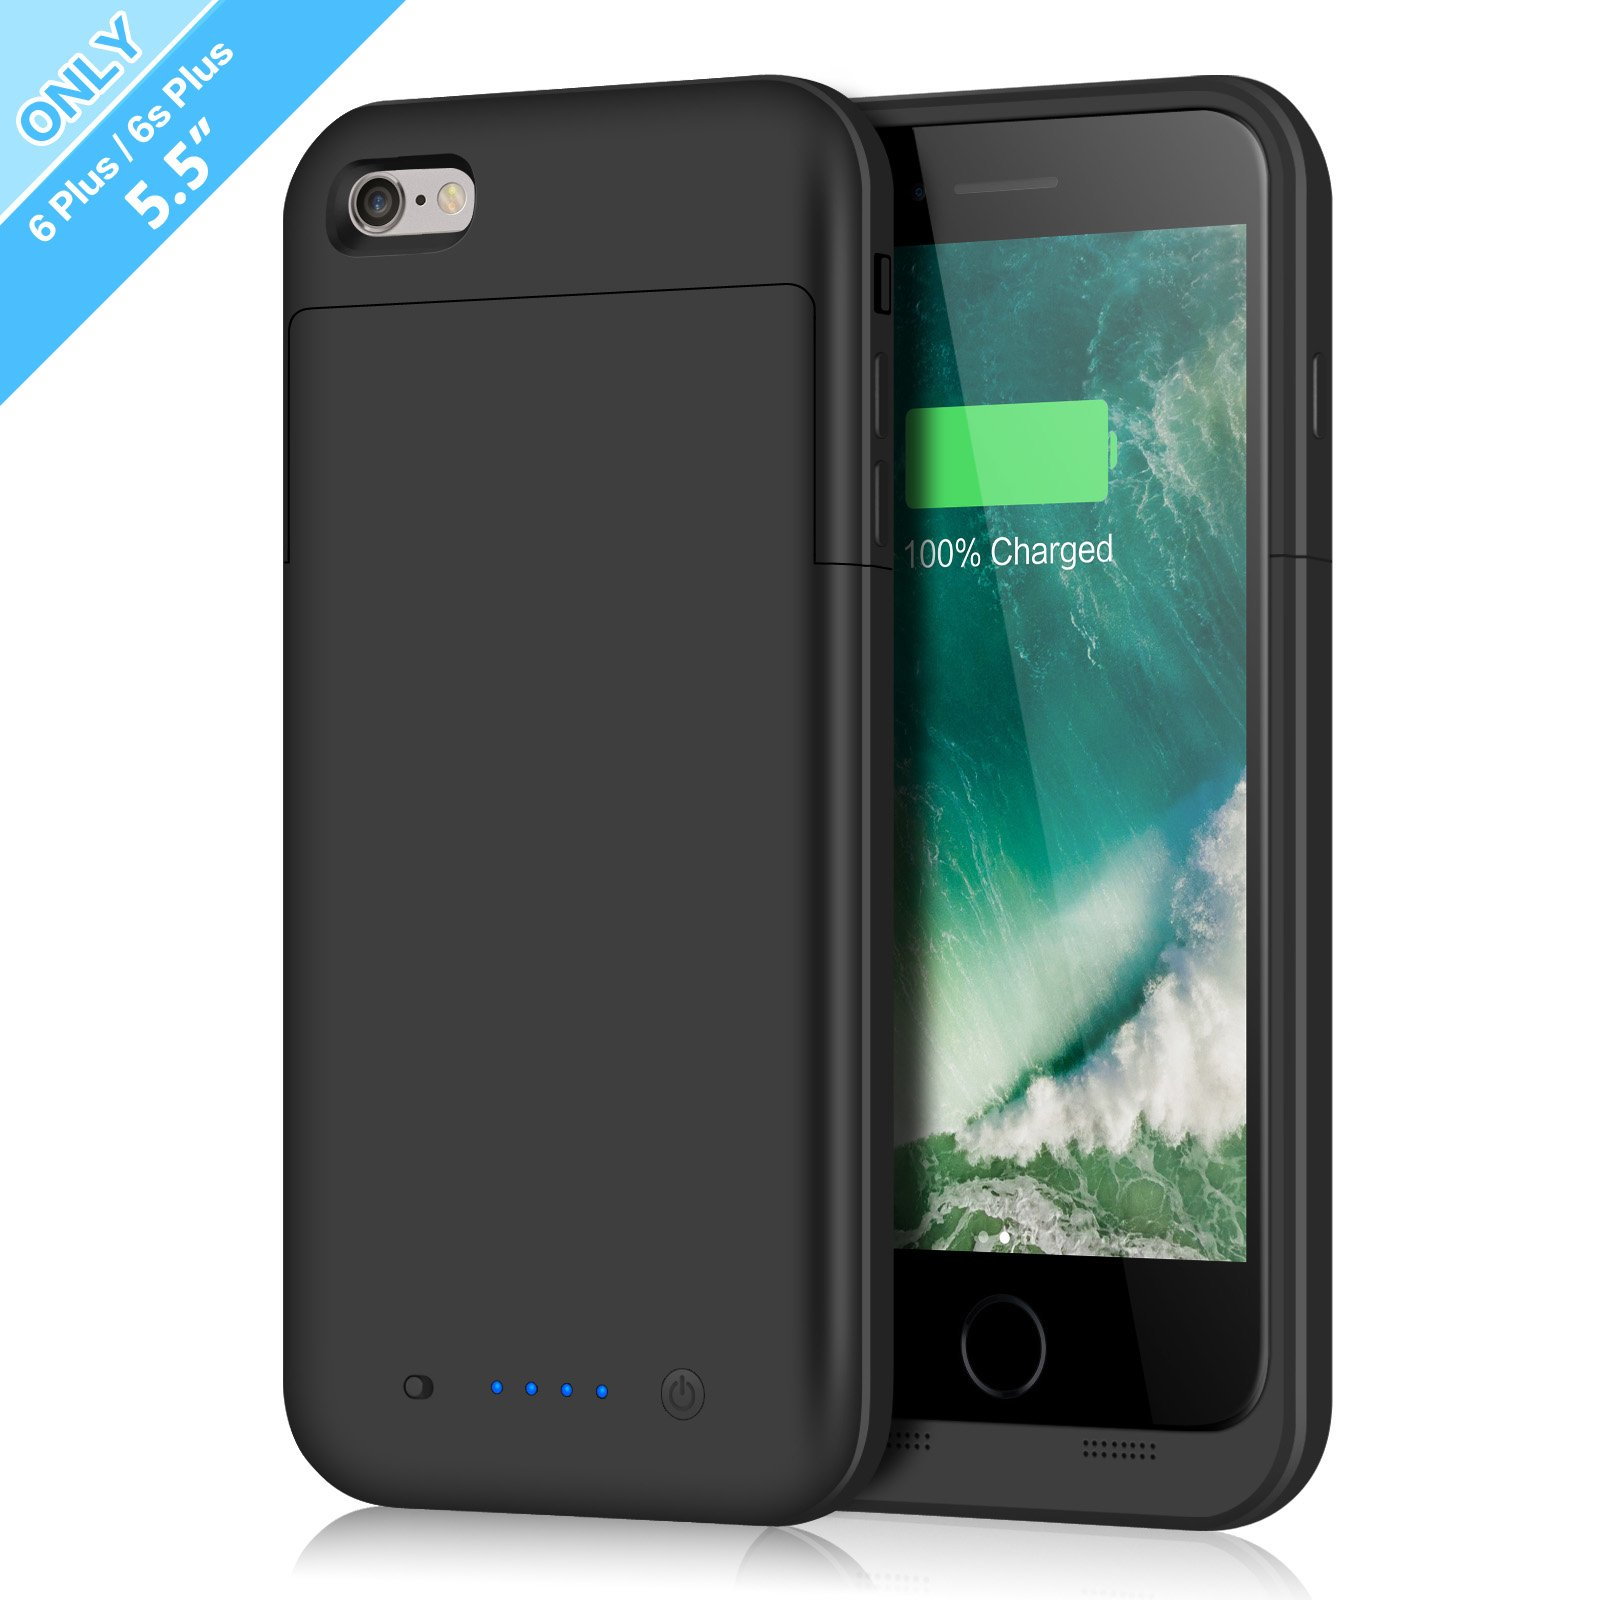 iPhone 6 Plus/6s Plus Battery Case,6800mAh Battery Pack Charger Case for 6 Plus Extended Portable Battery Charging Case for iPhone 6 Plus,6s Plus-Black